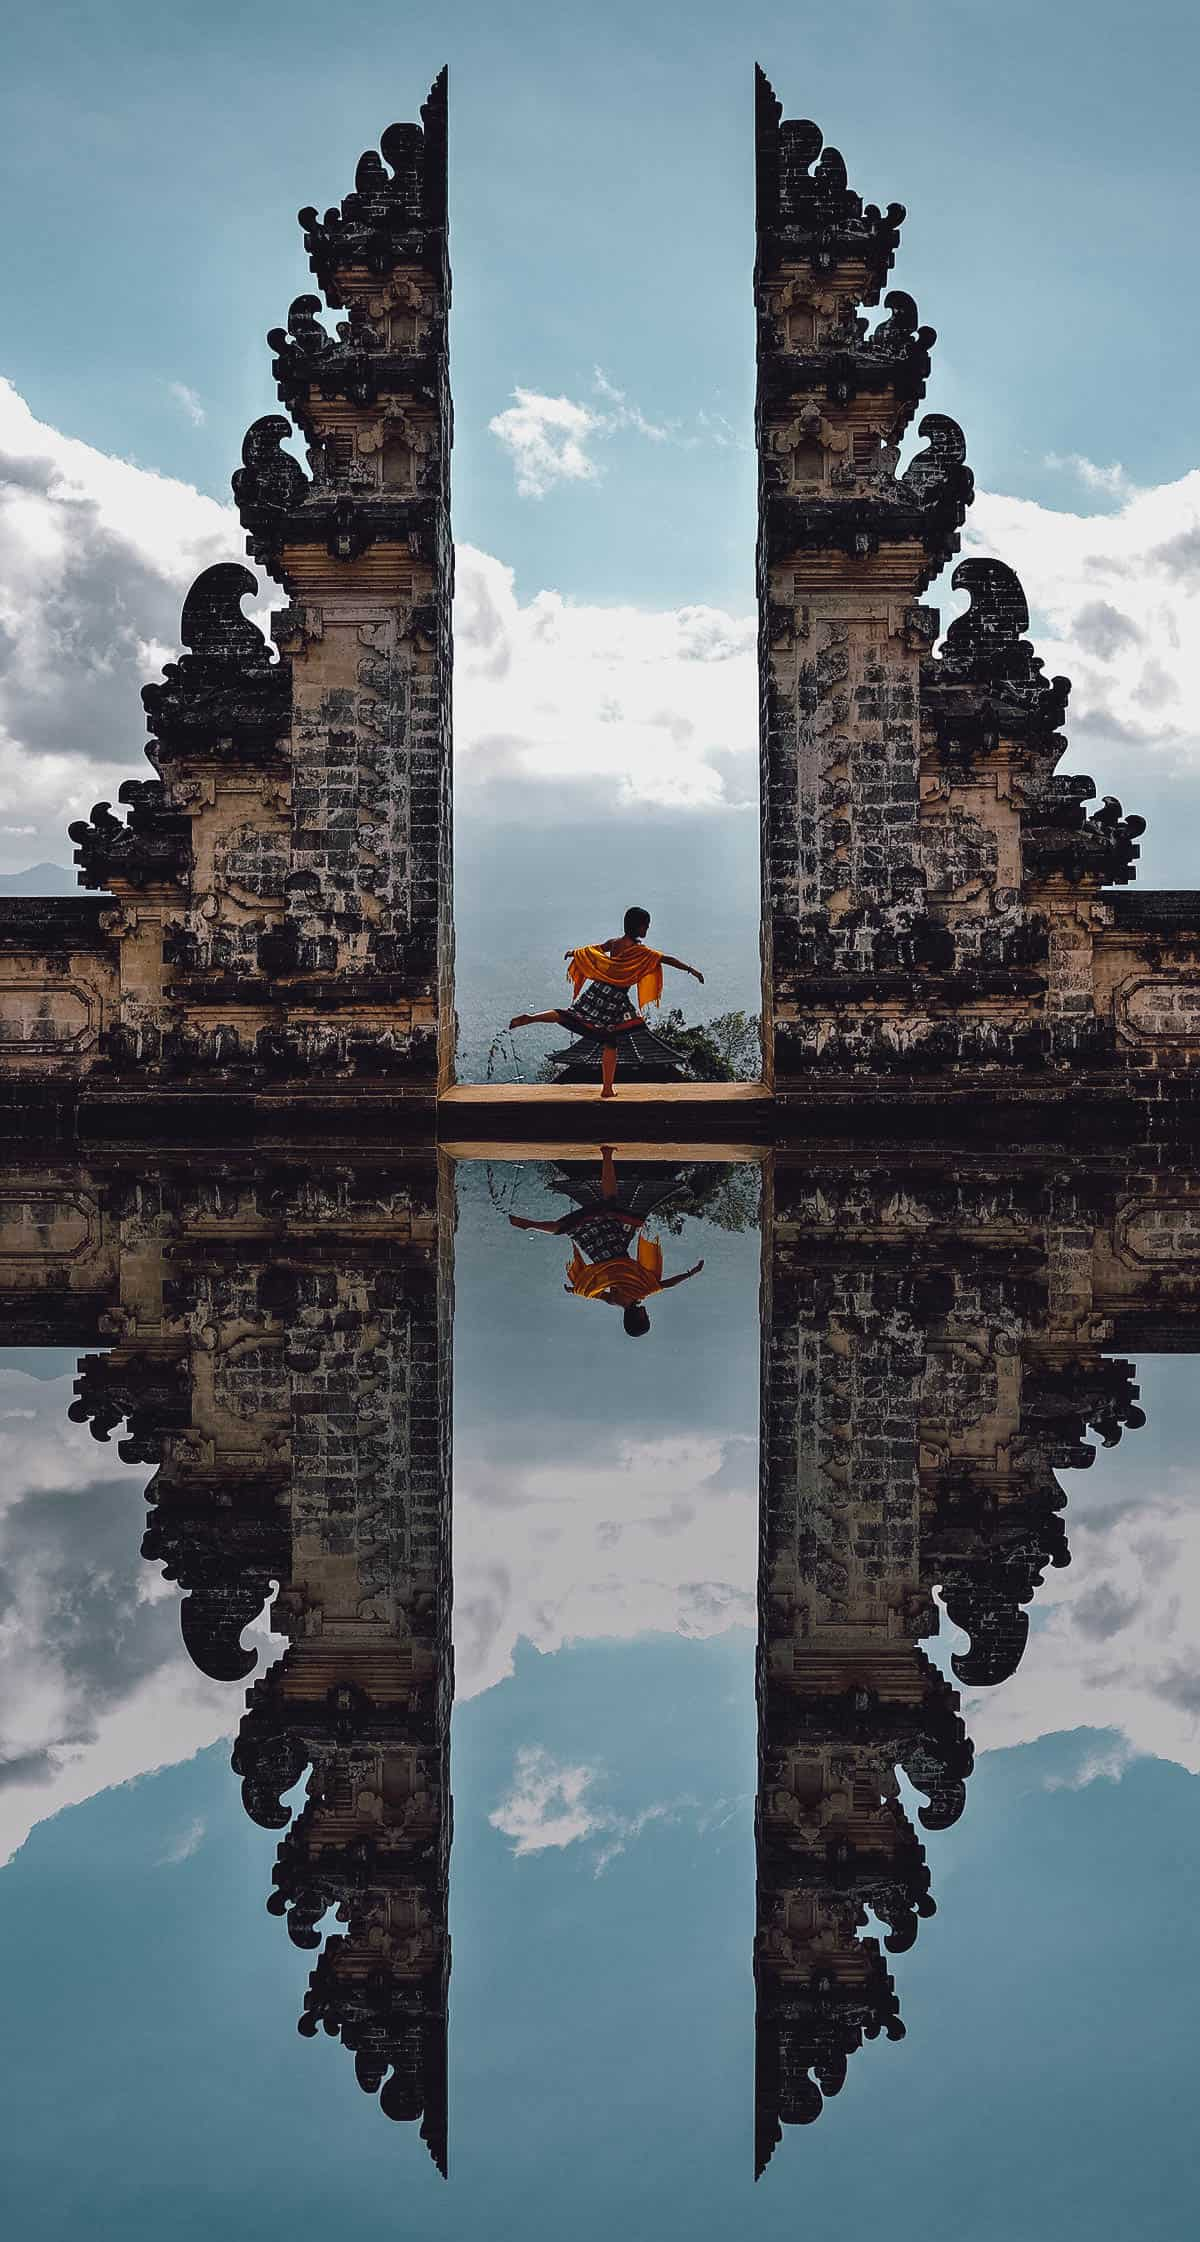 Woman posing at the Gate of Heaven in Bali